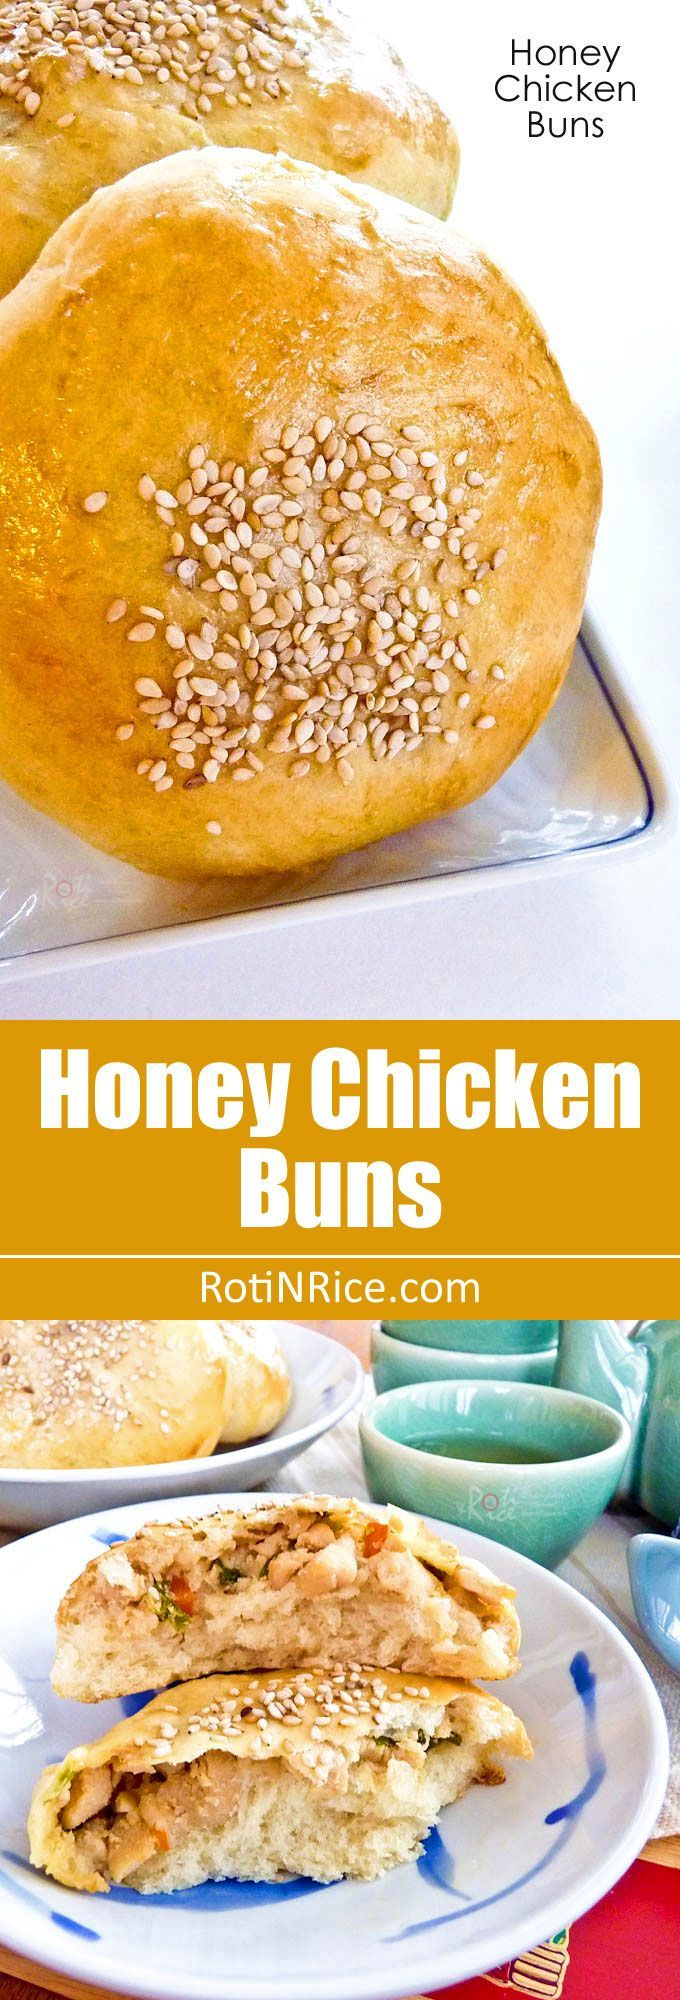 Delectable sesame seeded Honey Chicken Buns filled with honey and ginger flavored chicken. They are perfect for a snack or light lunch. | http://RotiNRice.com